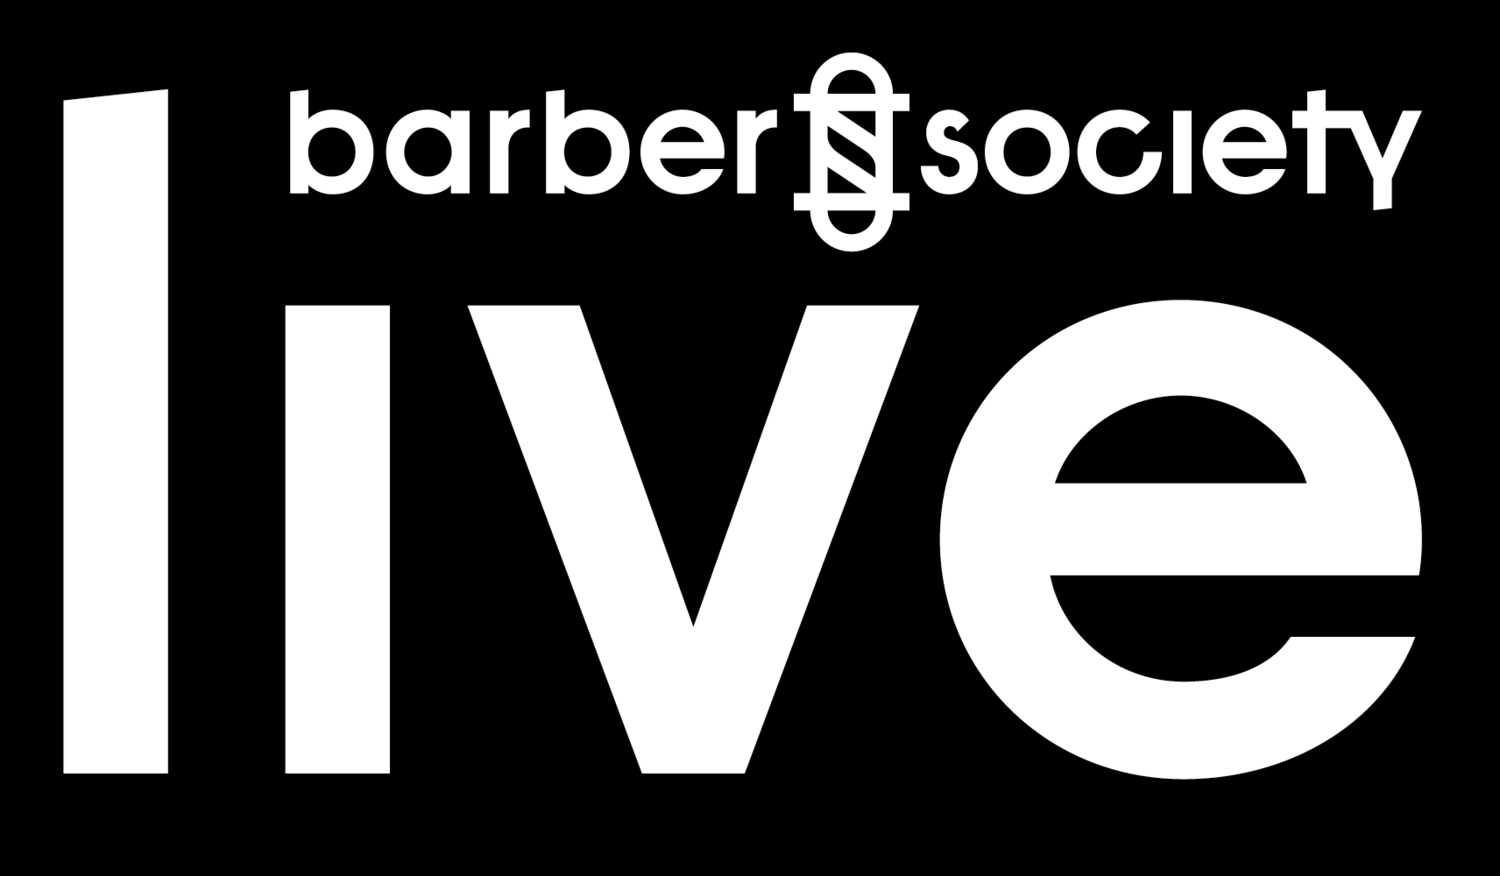 BarberSociety Live